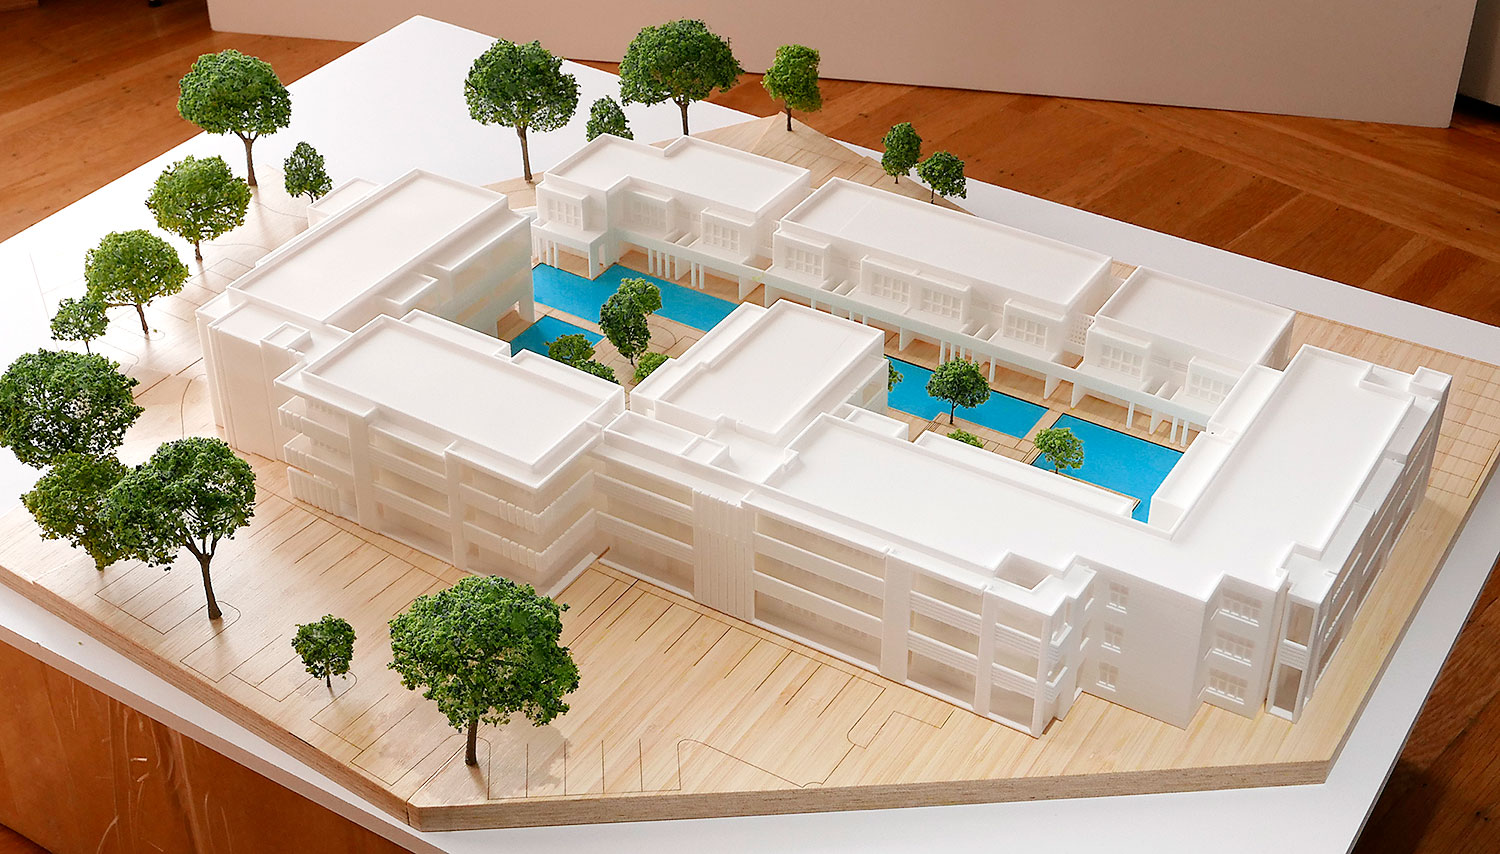 3d-printed-architecture-scale-model.jpg